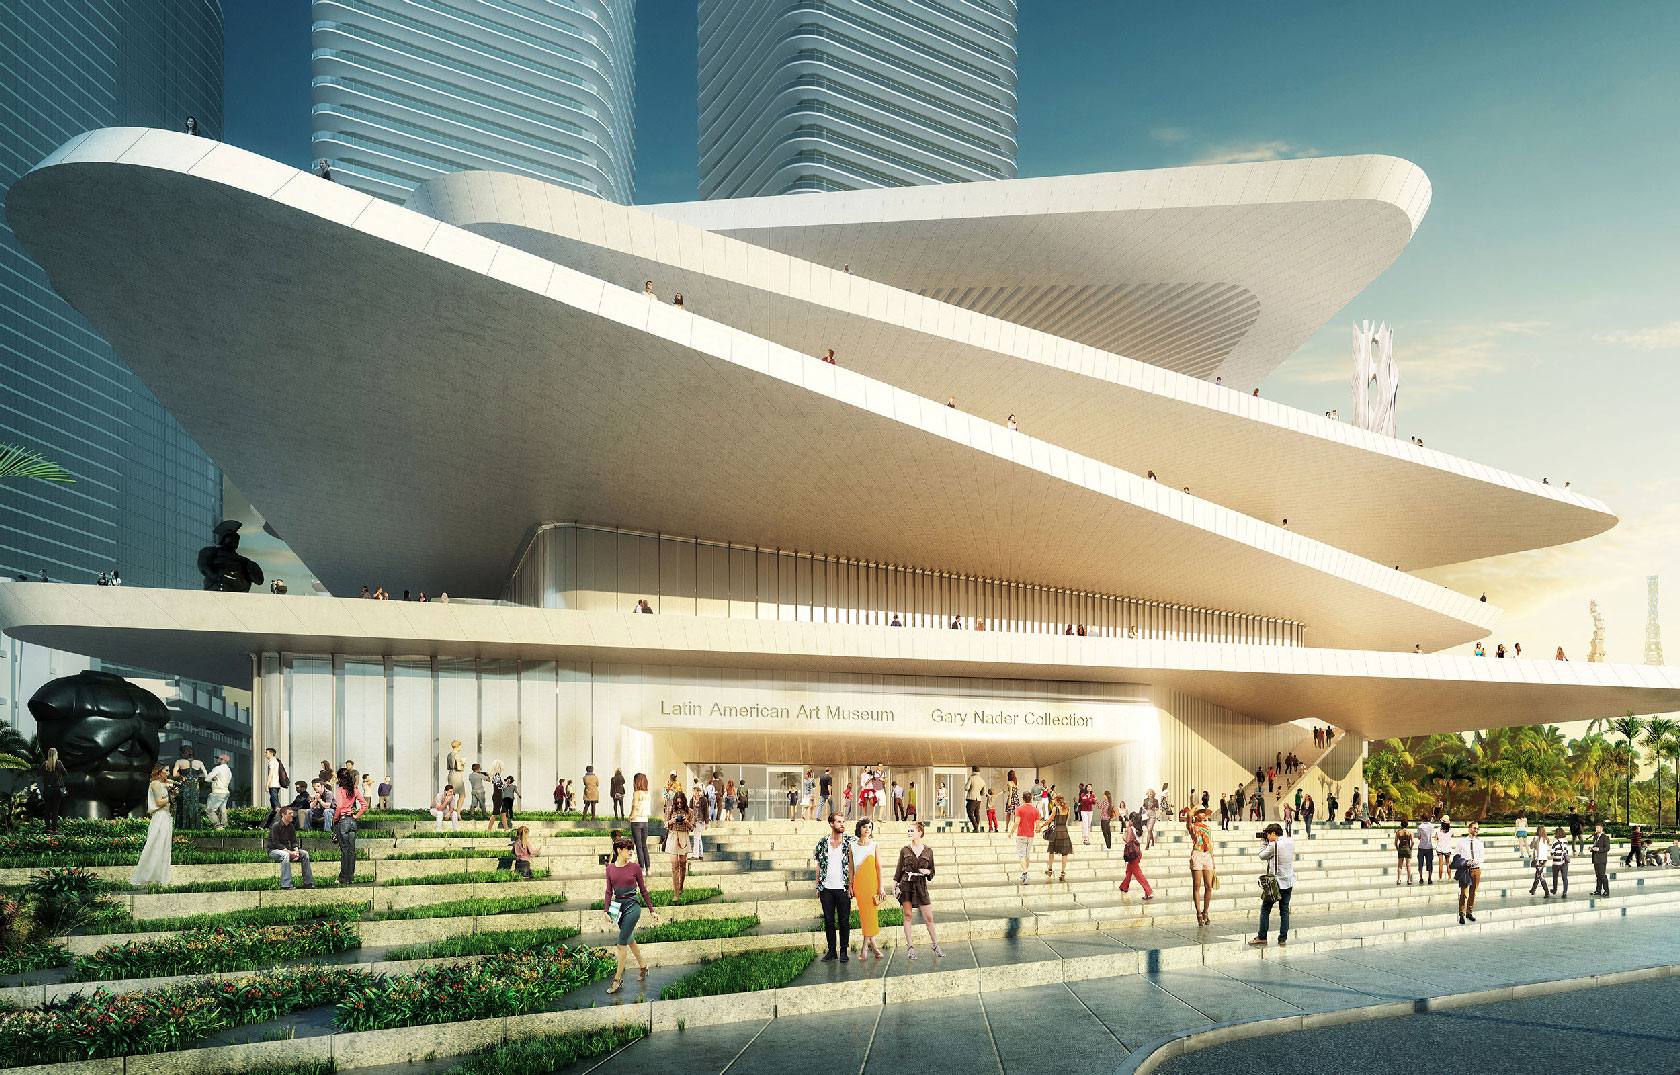 Legal Battle Over Gary Nader's Latin American Art Museum Proposal Continues with Miami Dade College